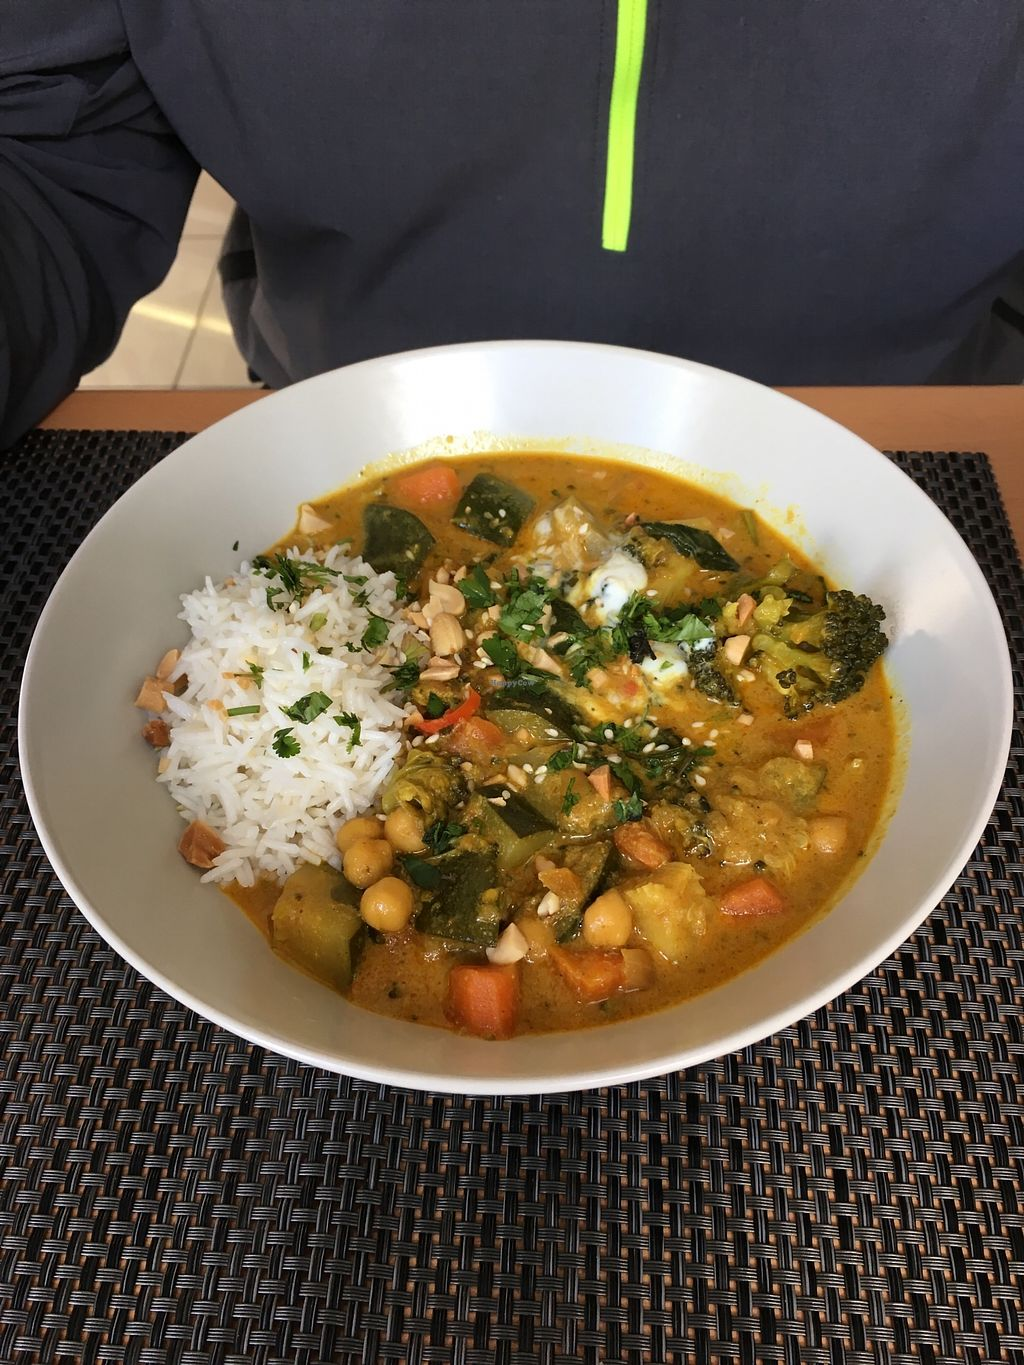 """Photo of Veggie Cafe  by <a href=""""/members/profile/carolgardenhill"""">carolgardenhill</a> <br/>Chick pea curry  <br/> April 13, 2018  - <a href='/contact/abuse/image/95965/385069'>Report</a>"""